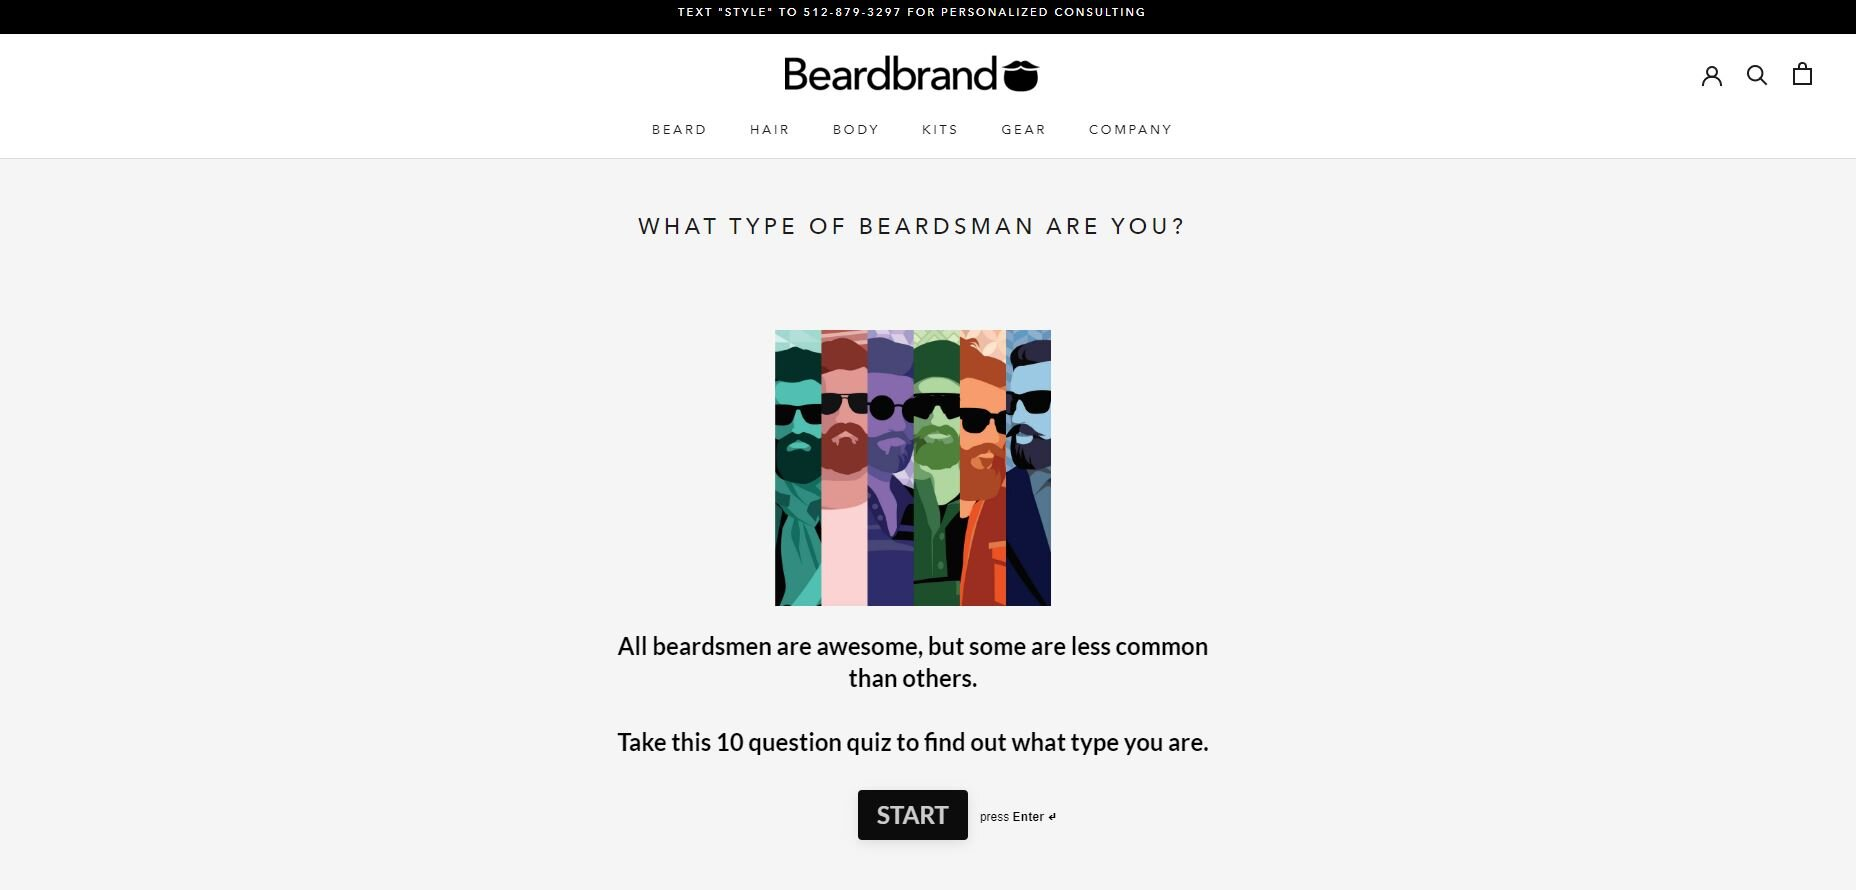 Beardbrand-Quiz-1.JPG